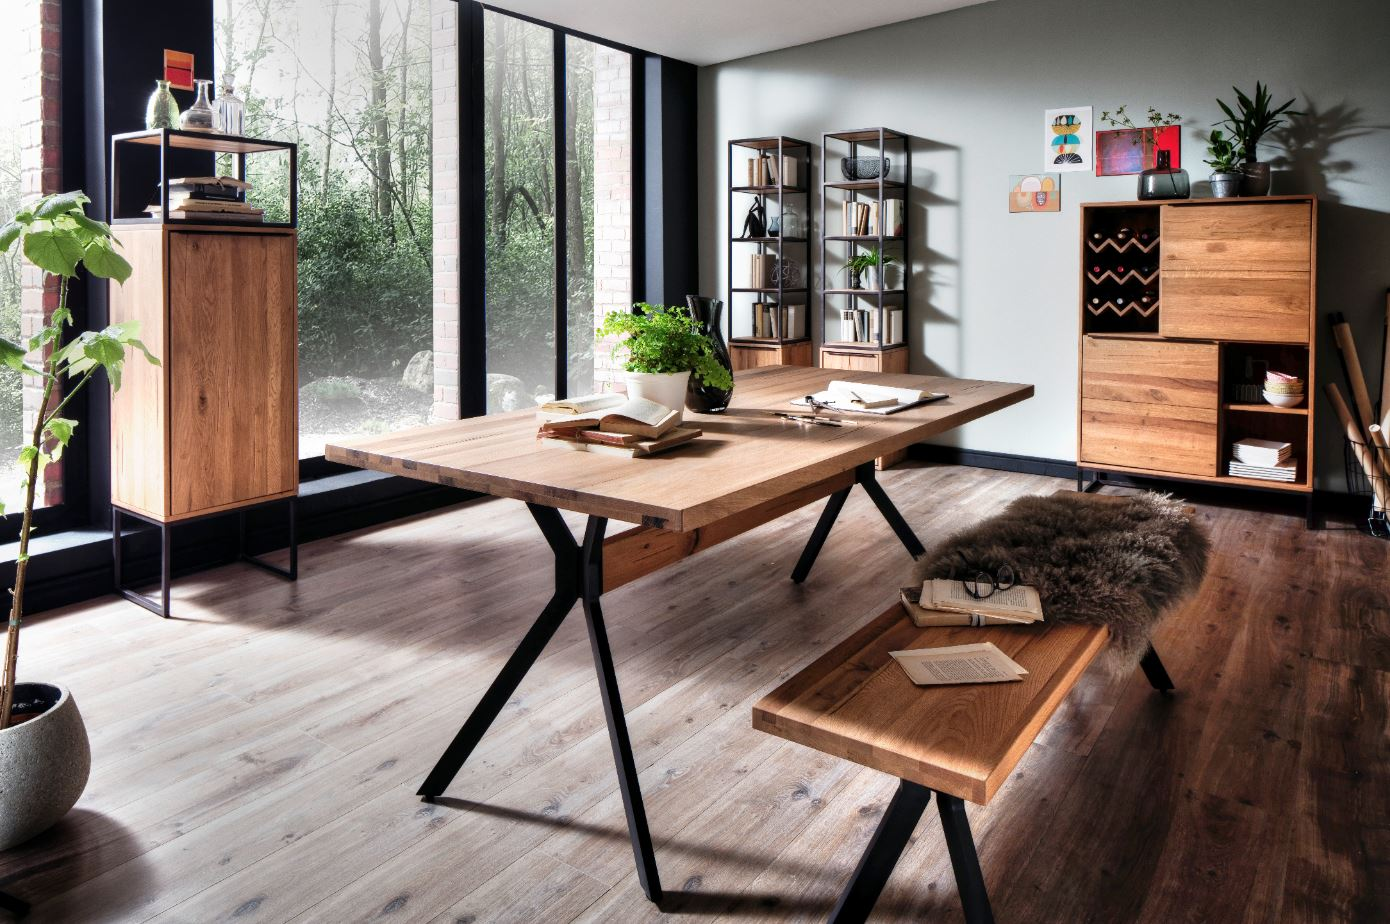 highboard kast wild eiken